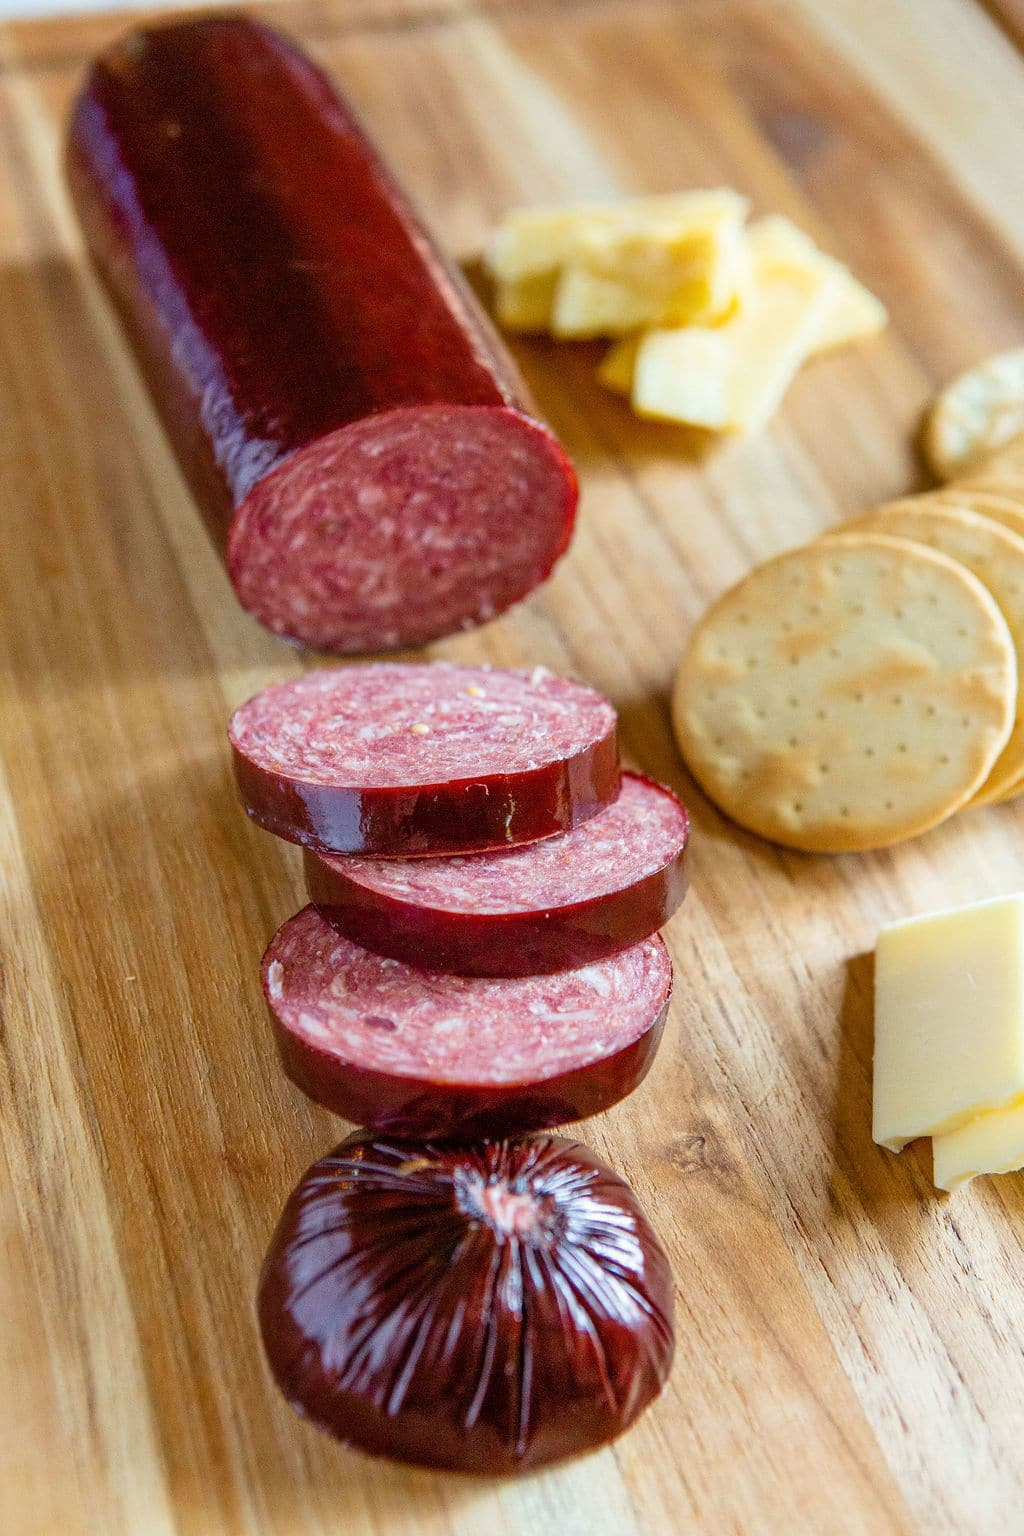 Complete Your Green Dirt Farm care package with summer sausage from KC Cattle Company.